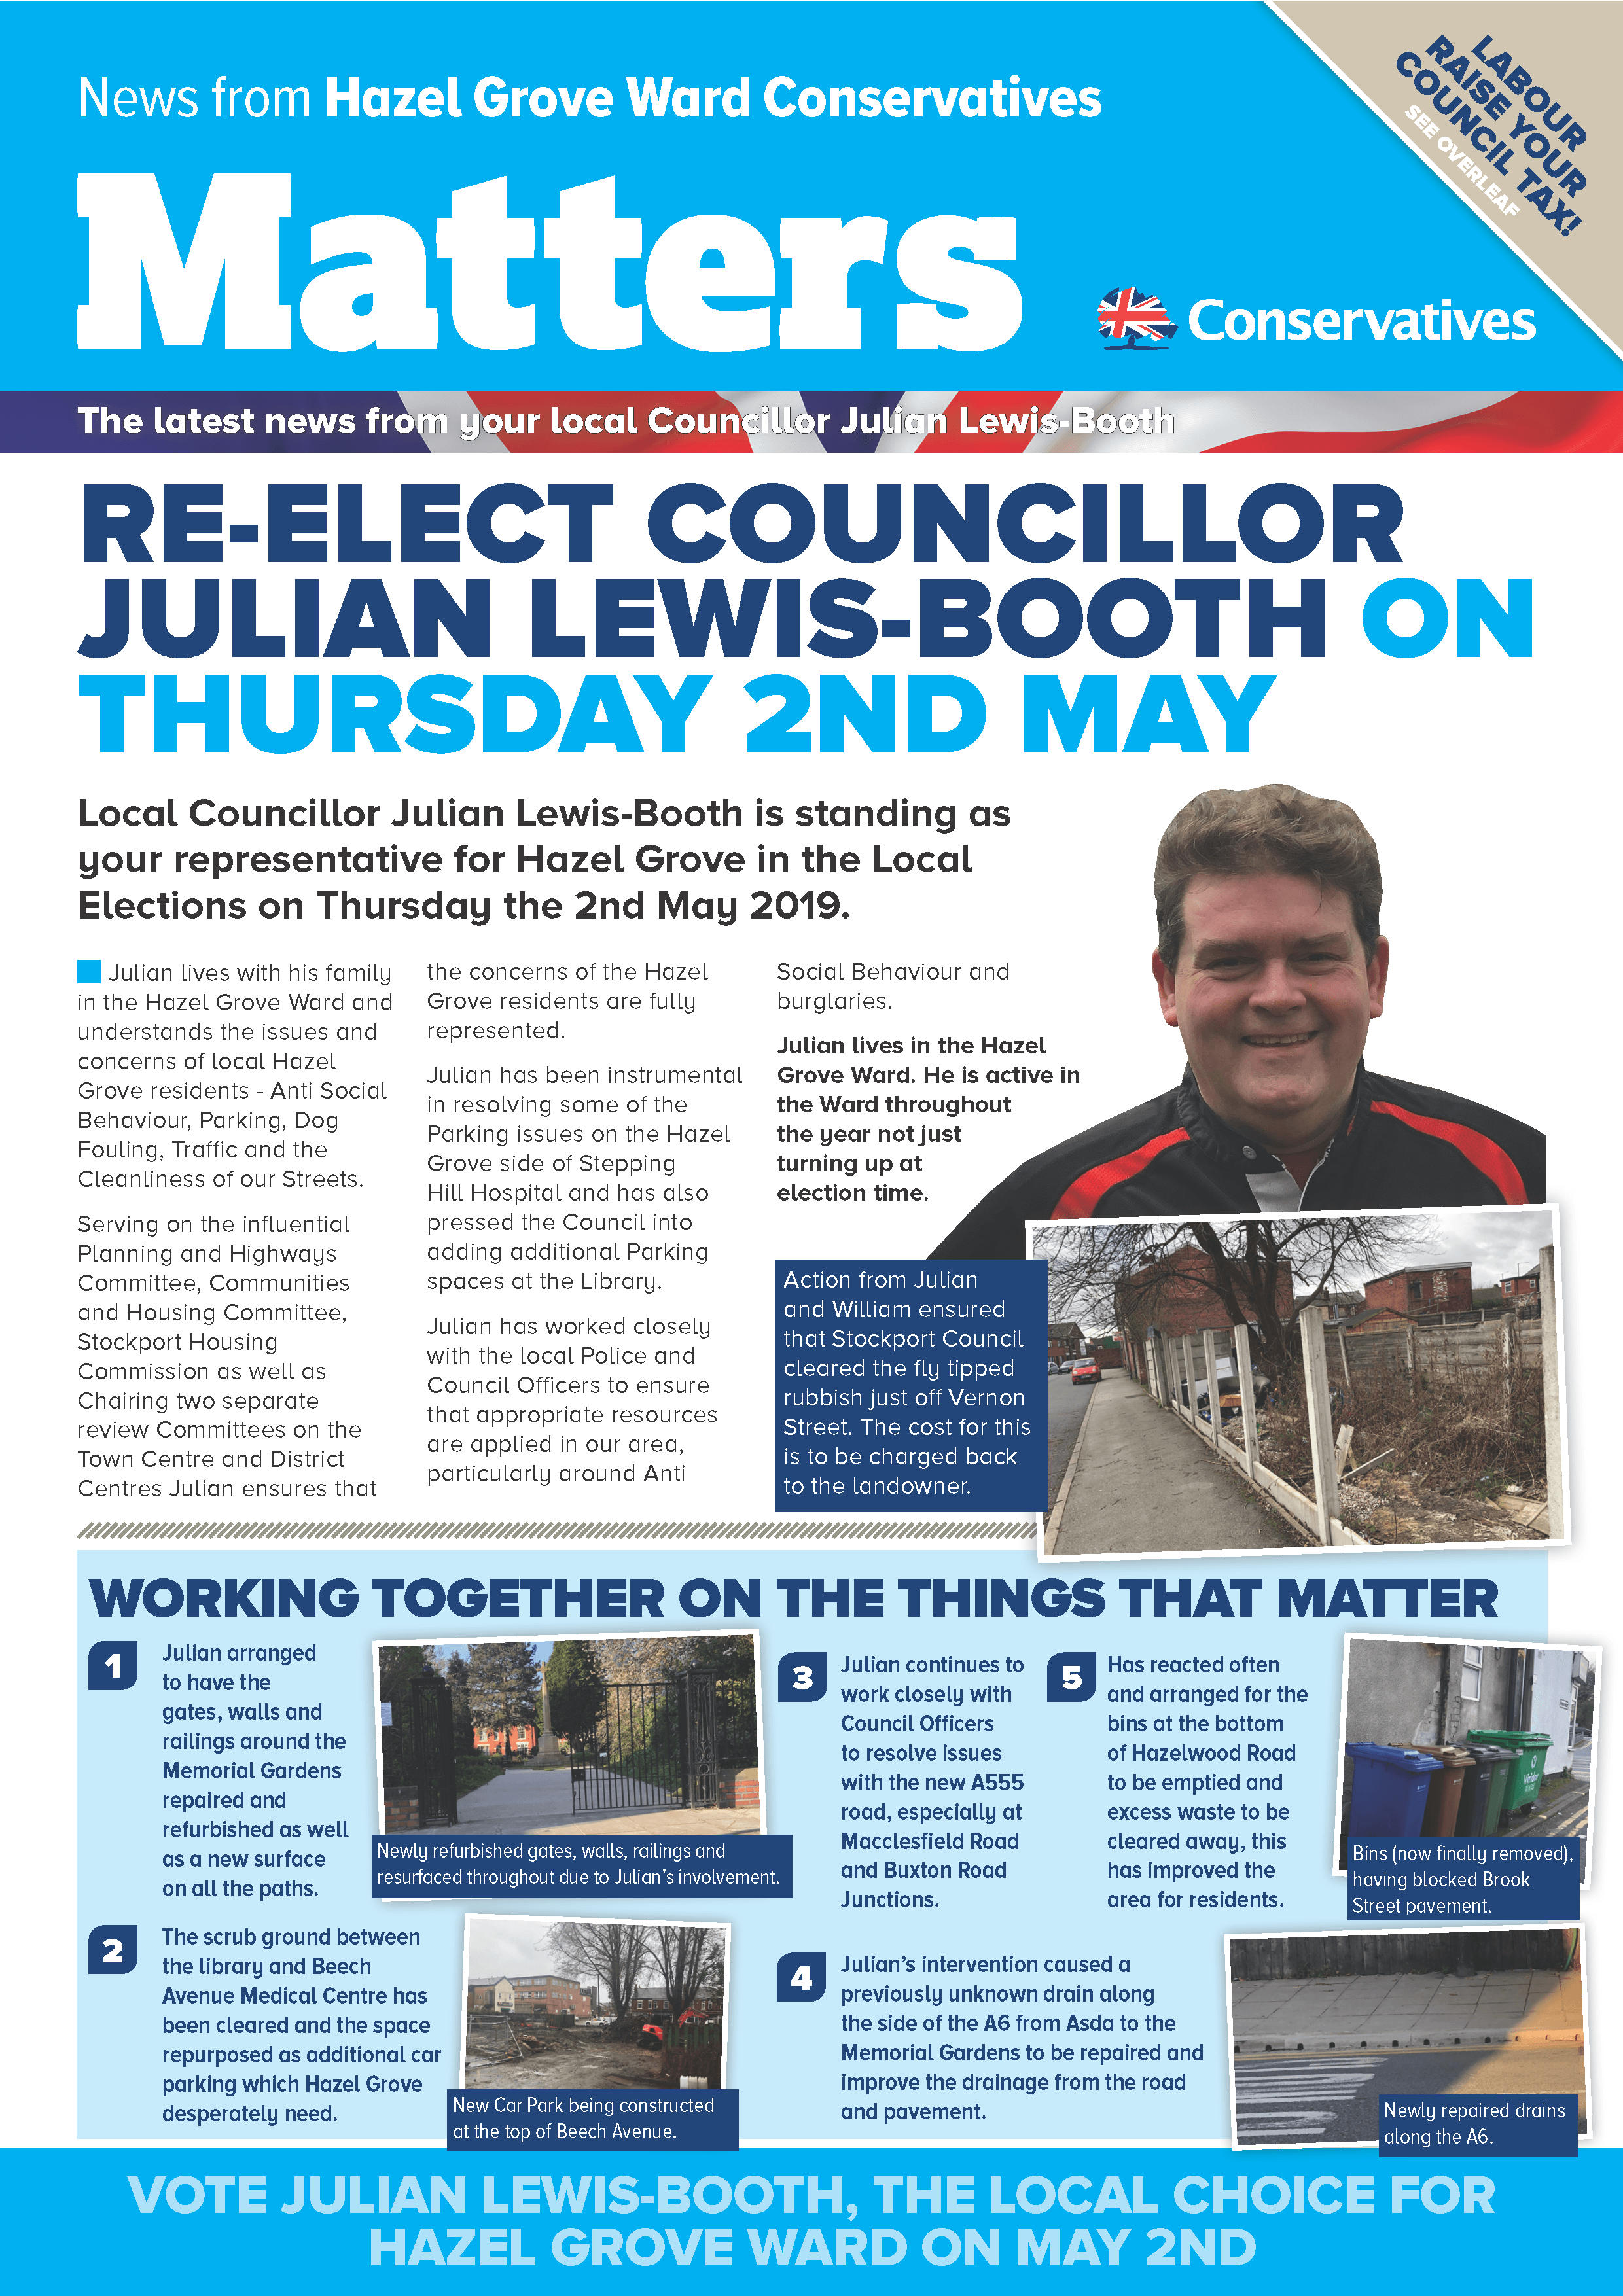 Re Elect Councillor Julian Lewis-Booth